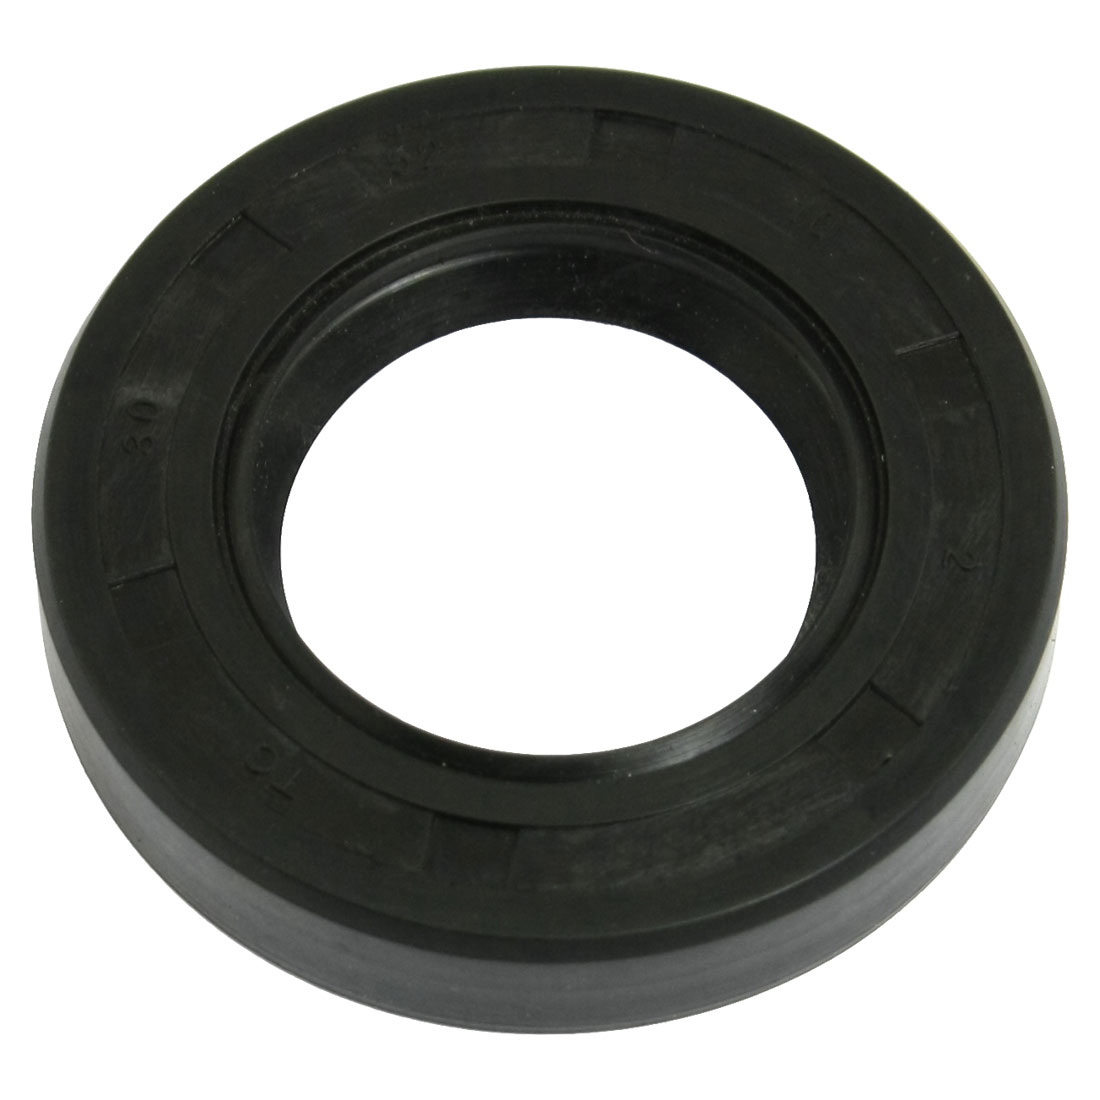 Steel Spring Nitrile Rubber Double Lip TC Oil Shaft Seal 30mm x 52mm x 10mm